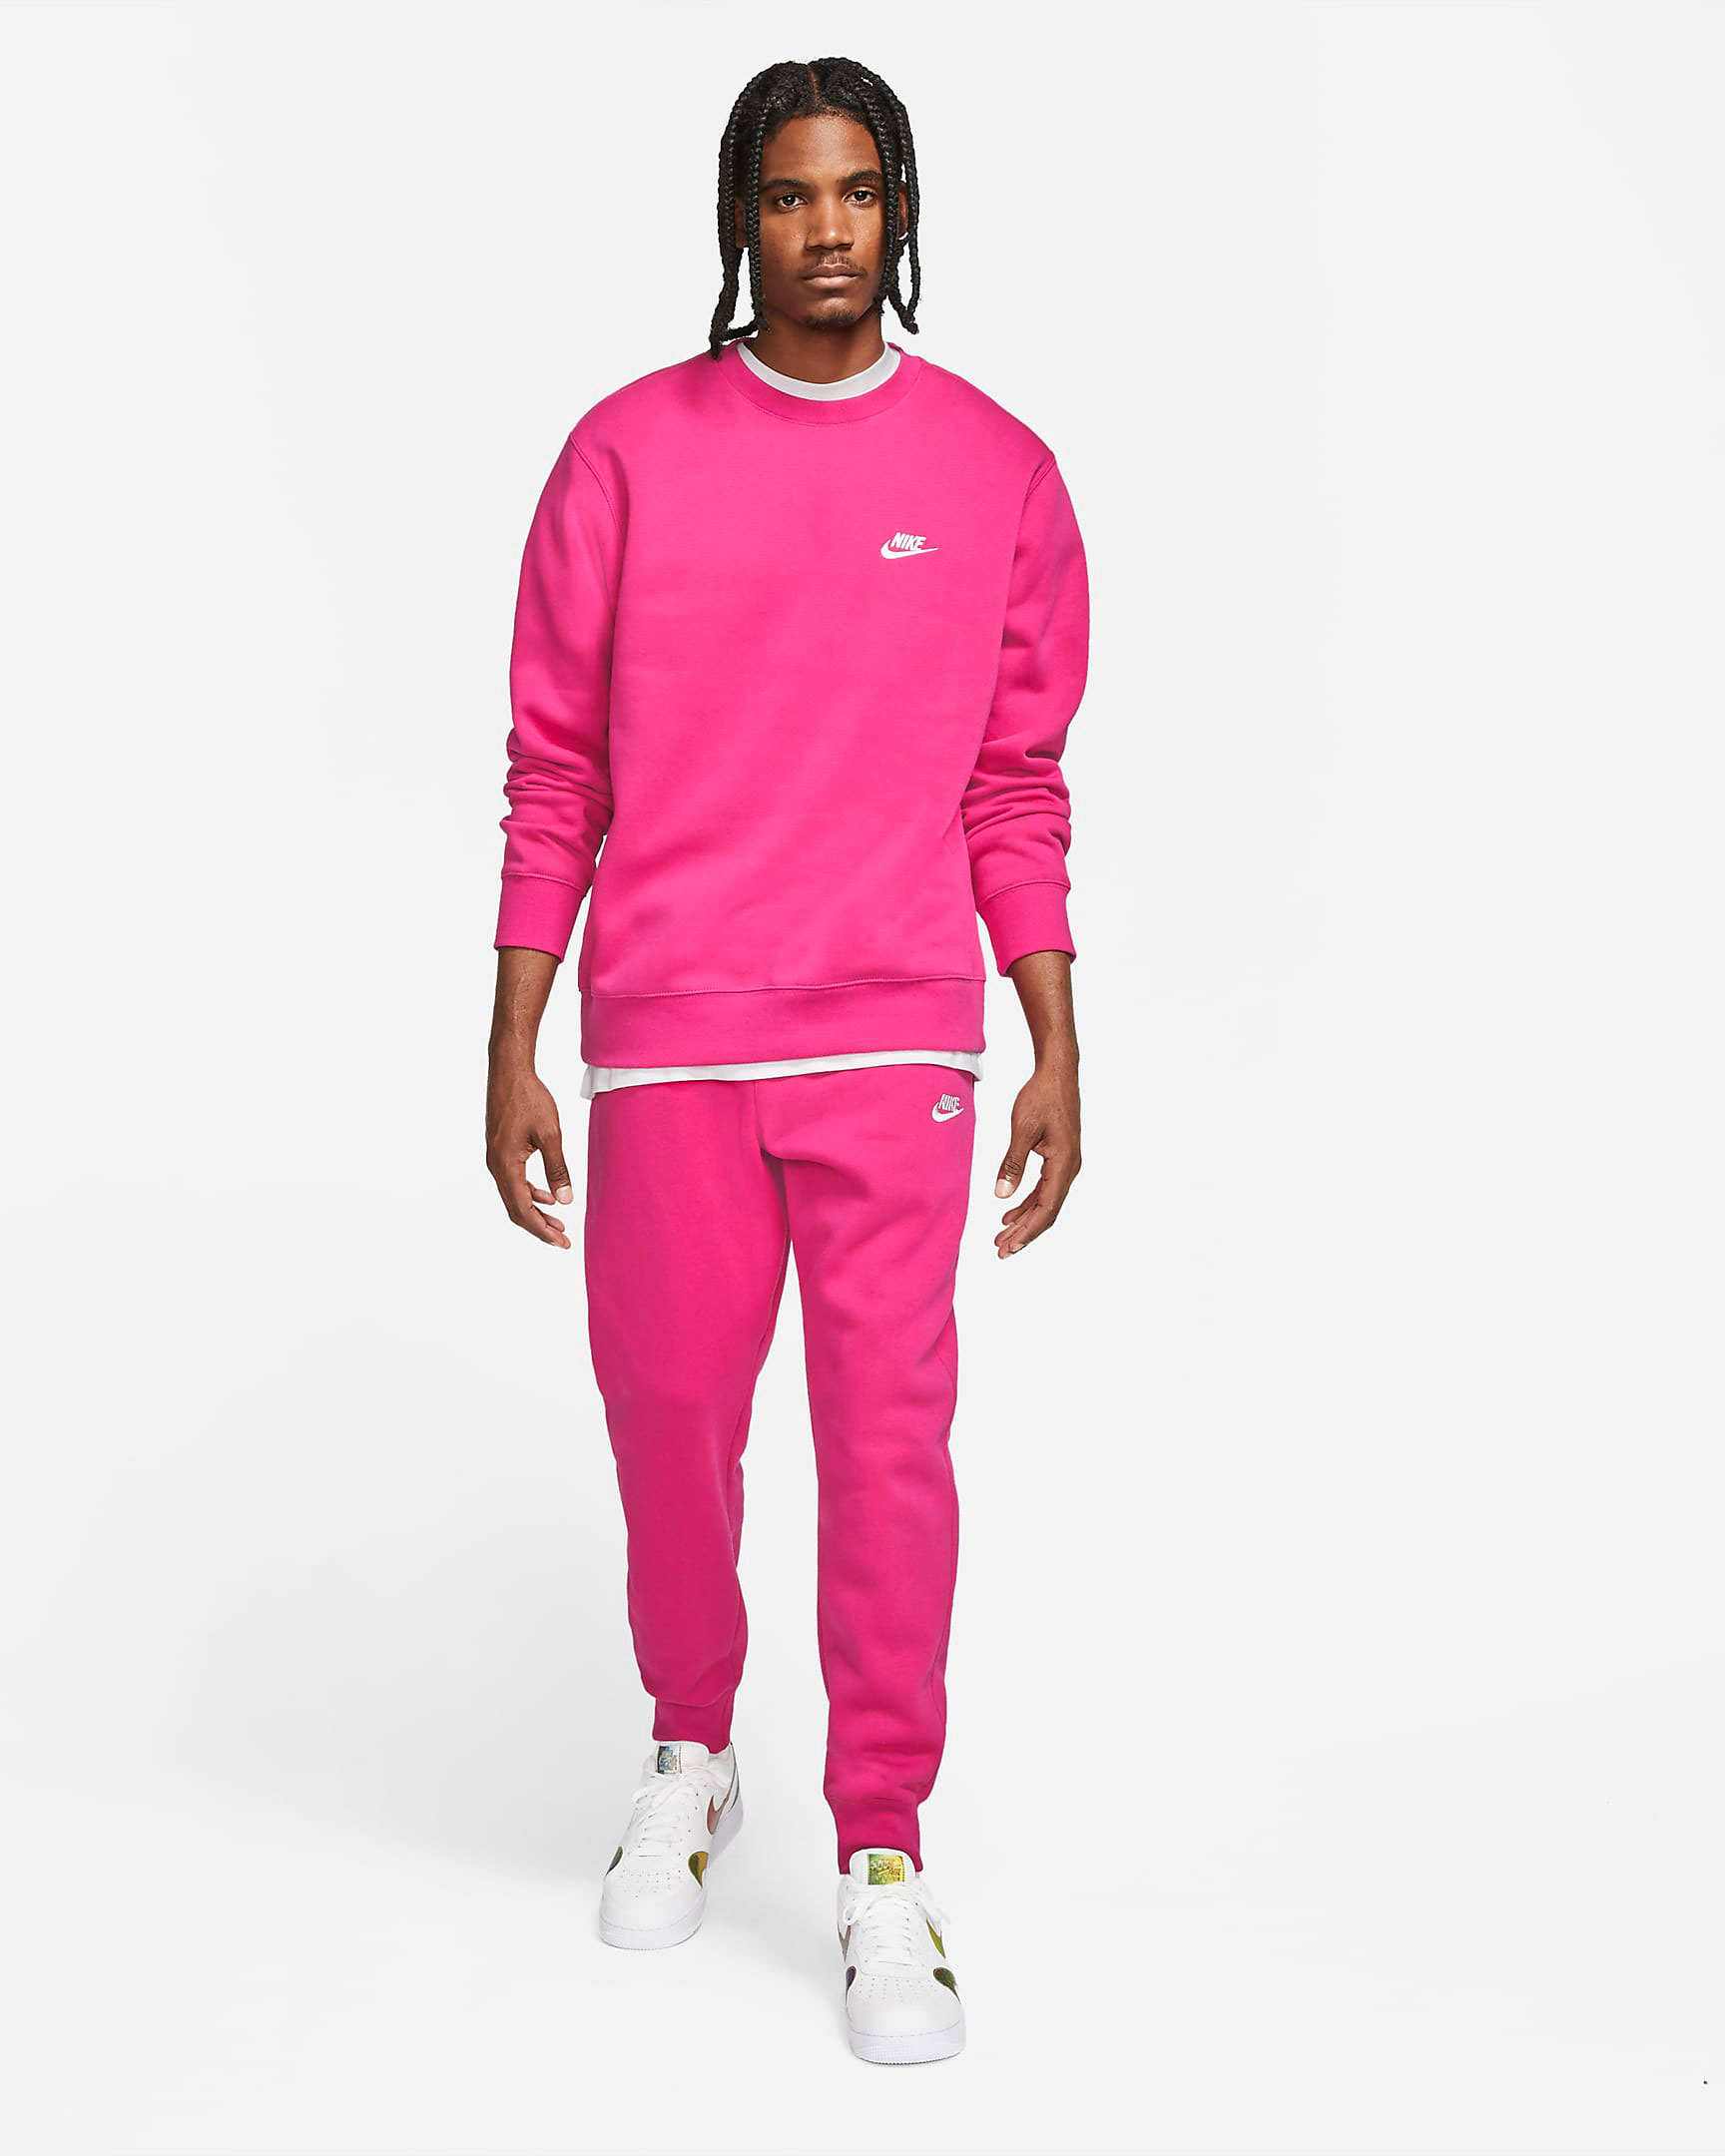 nike-club-fleece-sweatshirt-jogger-pants-fireberry-pink-outfit